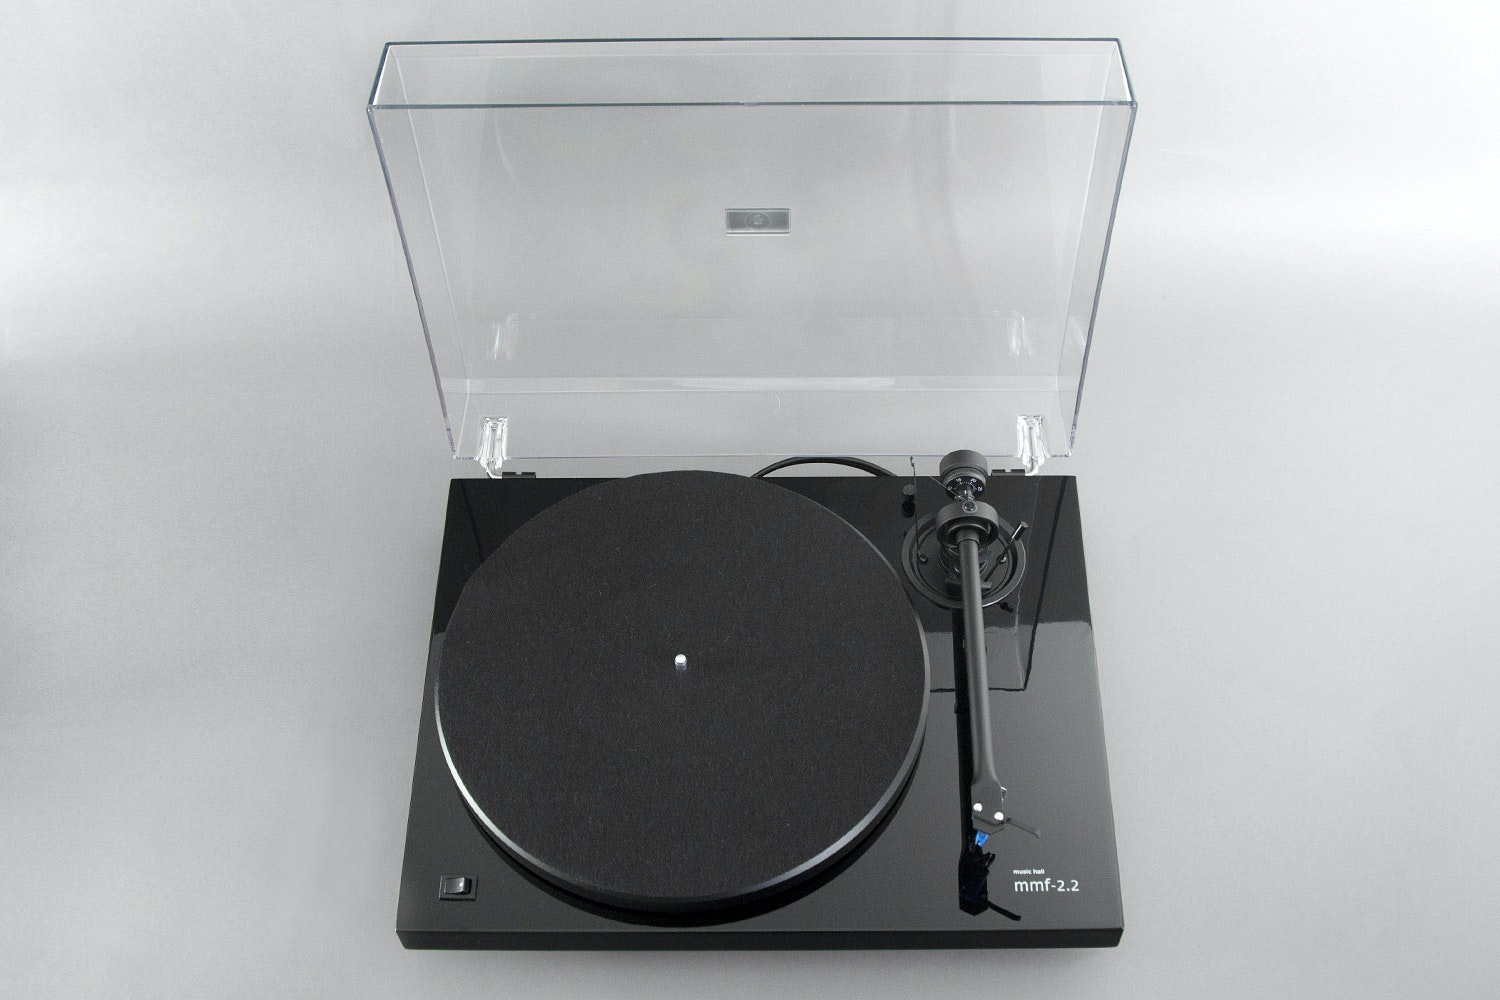 Music Hall MMF-2.2 Turntable